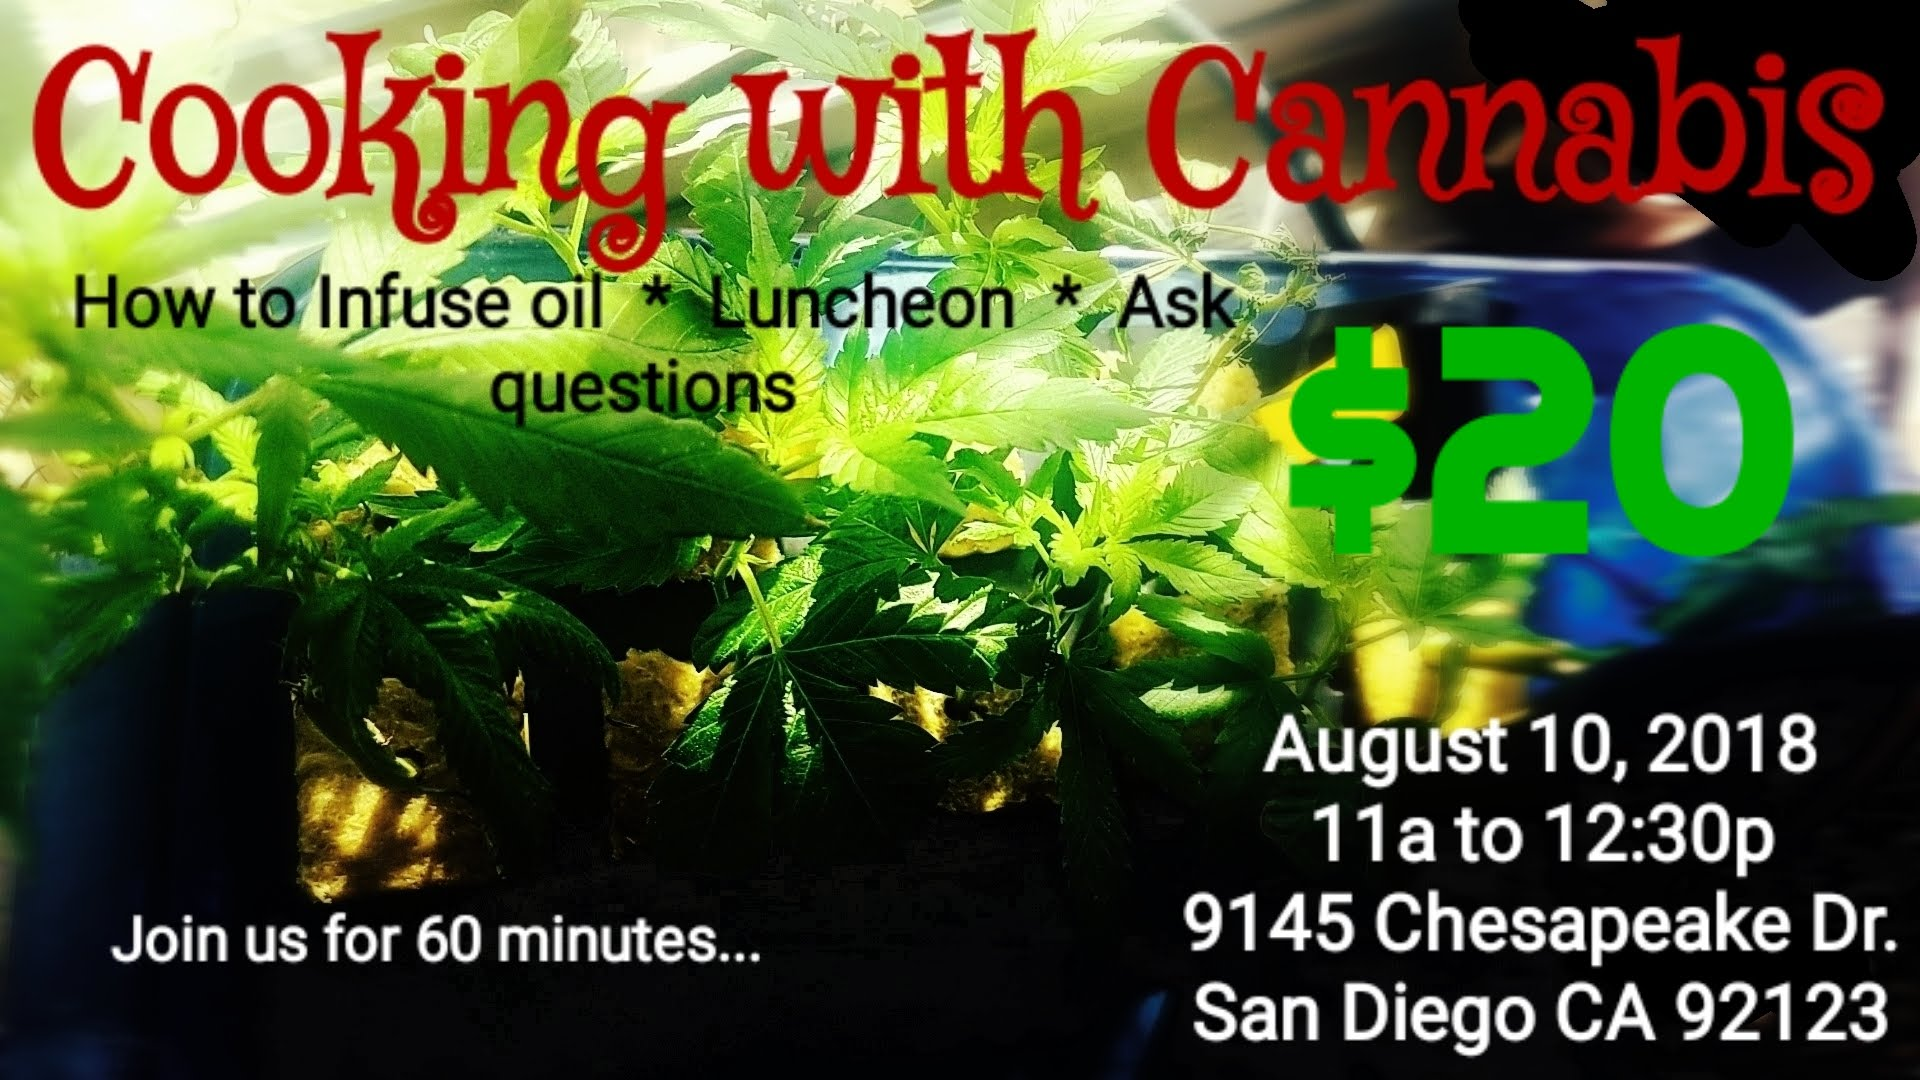 CANNABIS AND COOKING